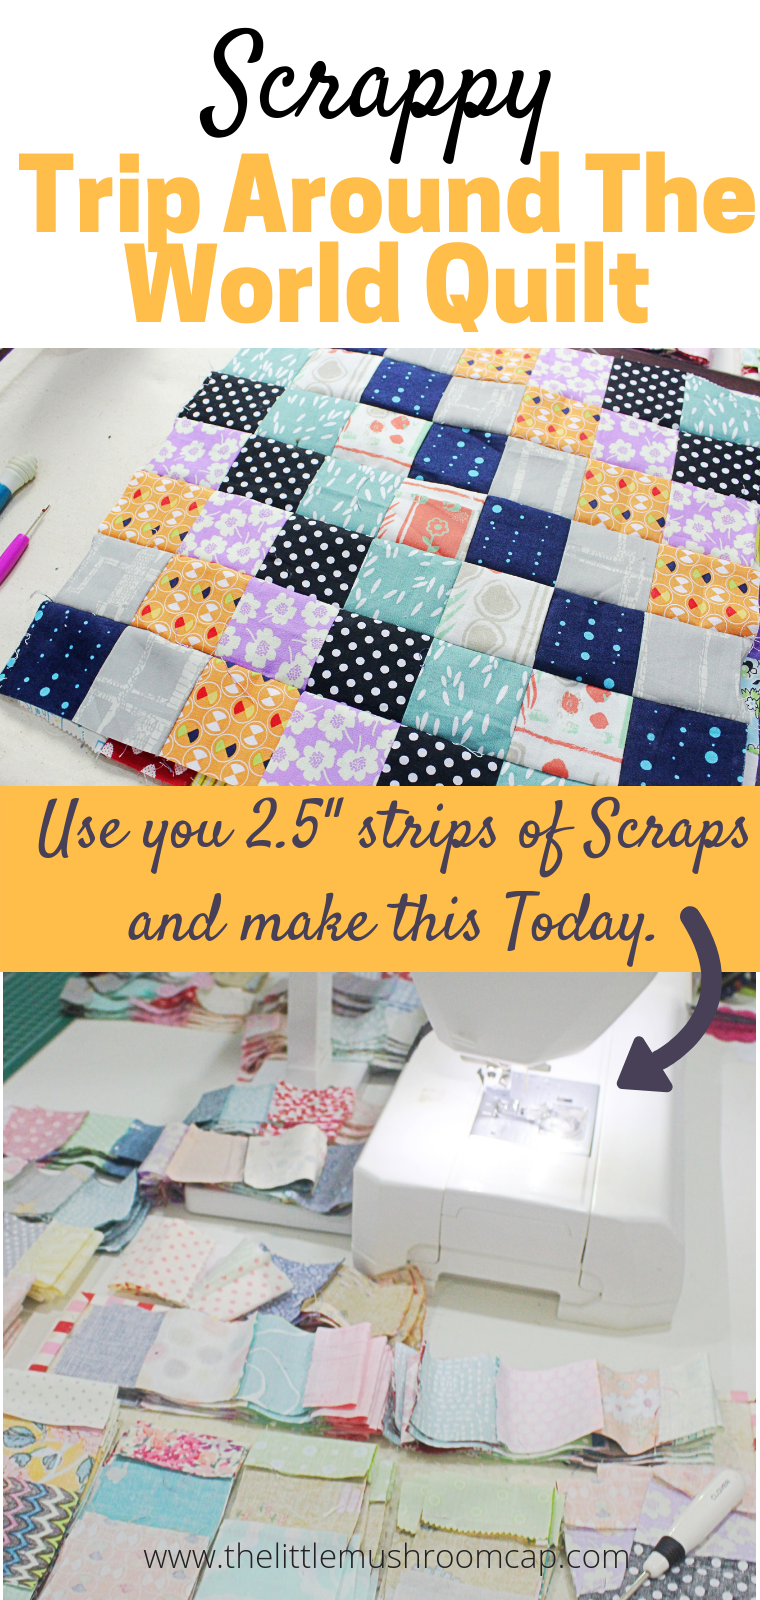 W I P Scrappy Trip Around The World Quilt With Images Scrappy Quilt Patterns Quilt Patterns Quilts